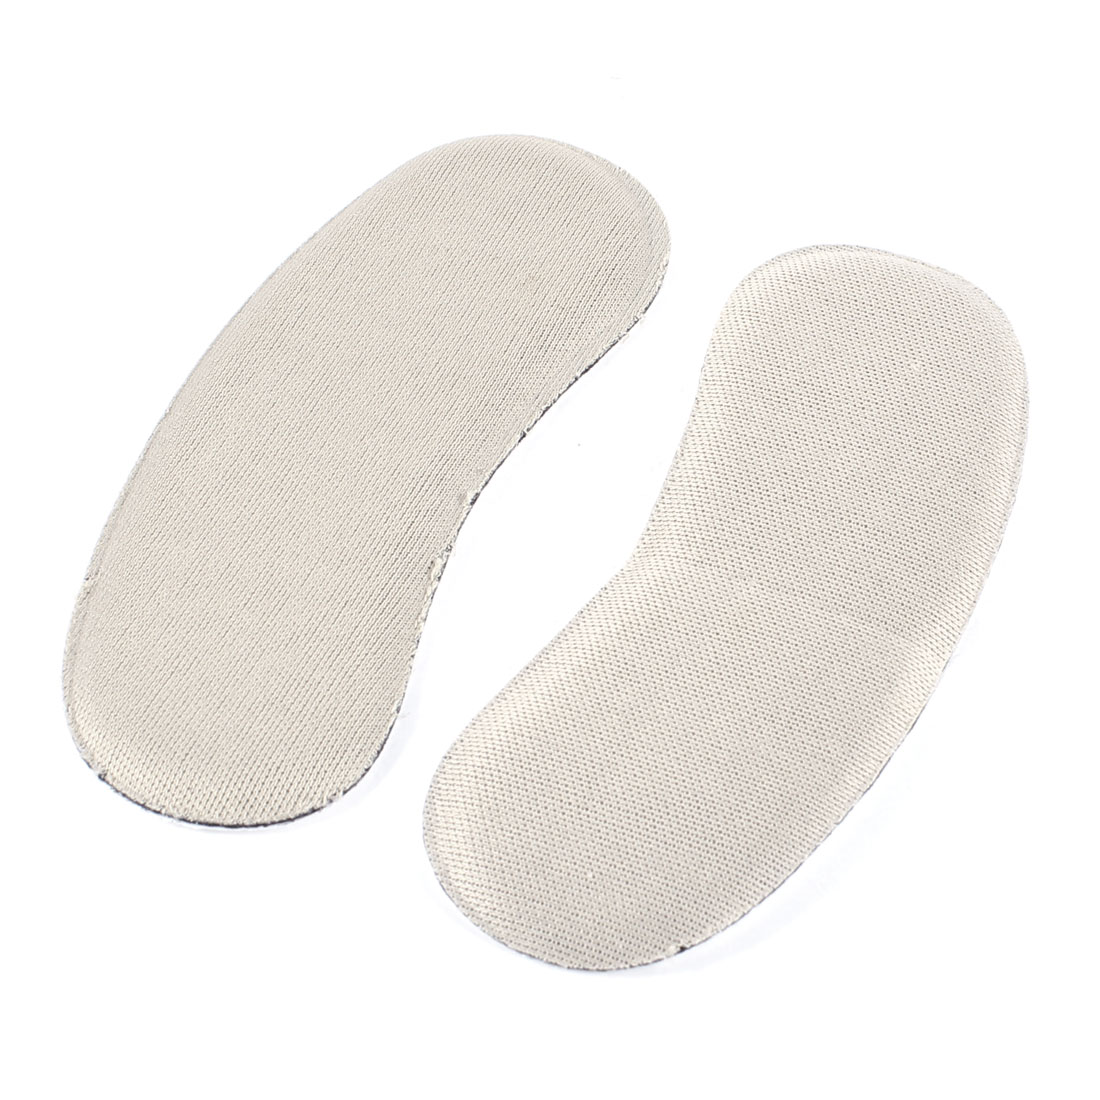 Pair Khaki Faux Leather Back Pad Heel Shoe Protector Insoles for Women